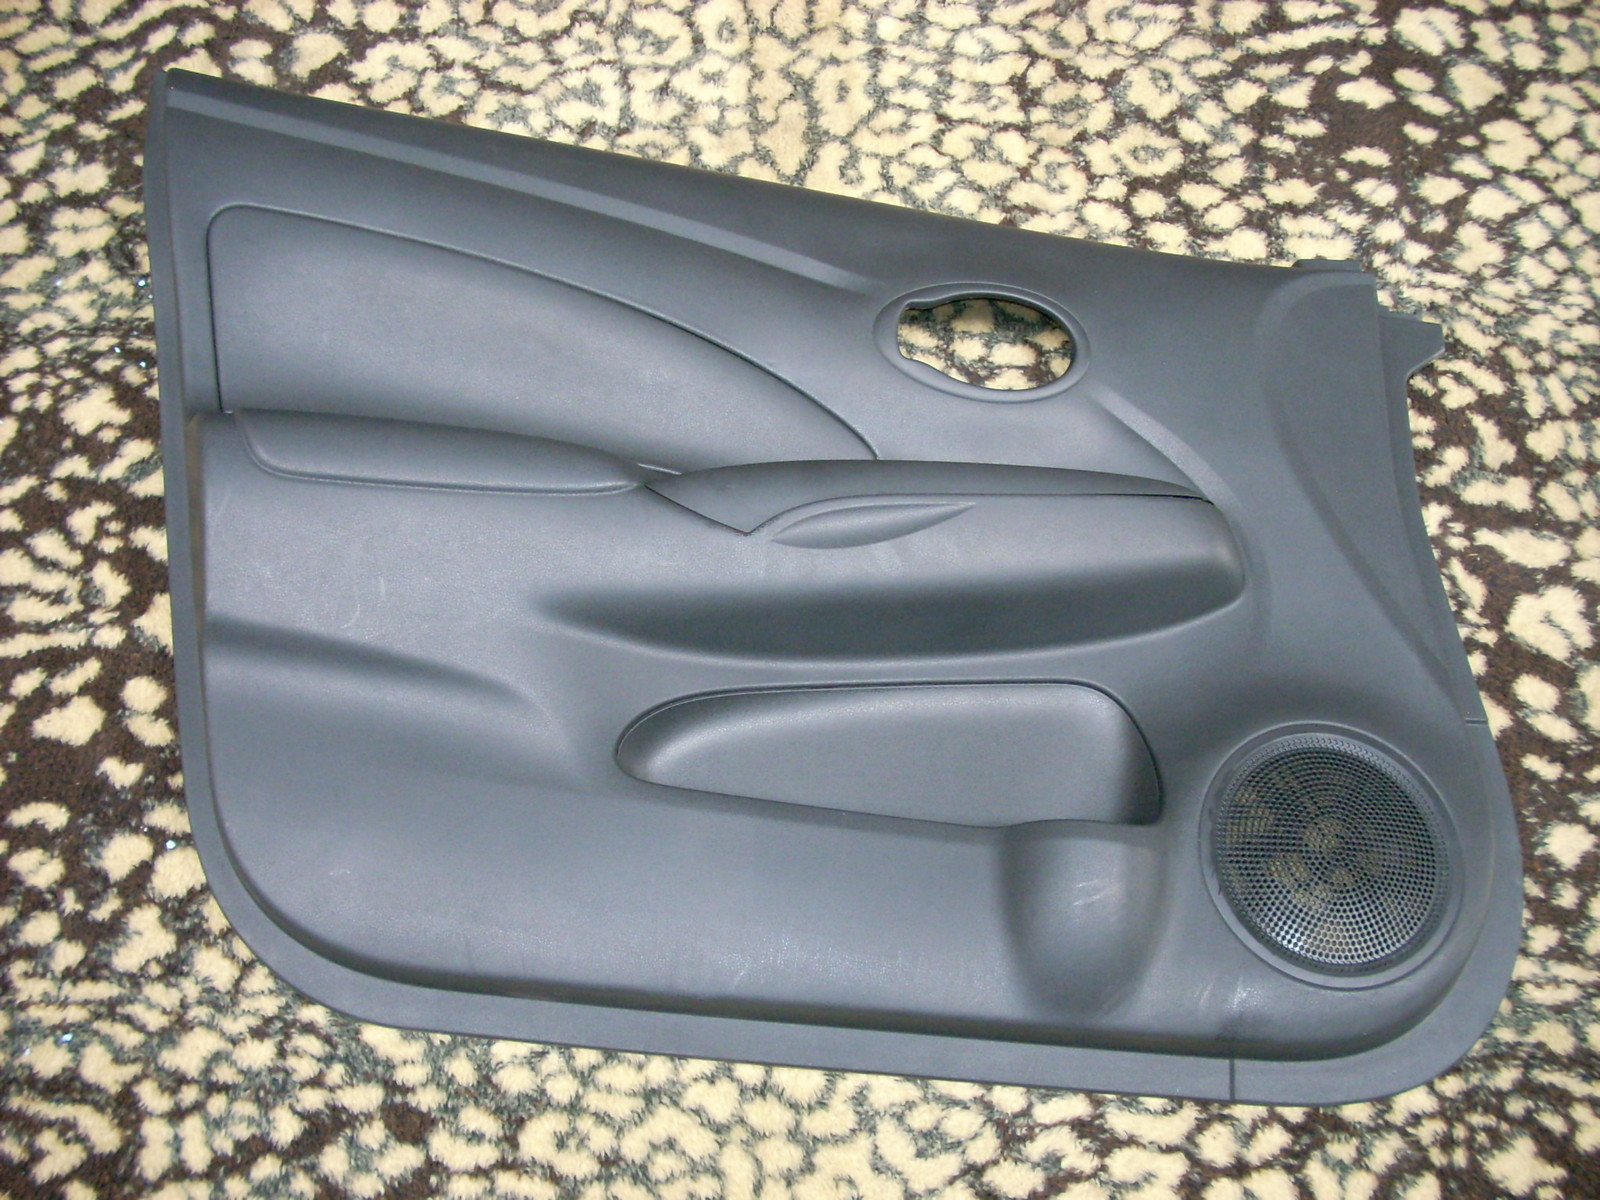 2012 NISSAN VERSA LEFT FRONT DOOR TRIM PANEL